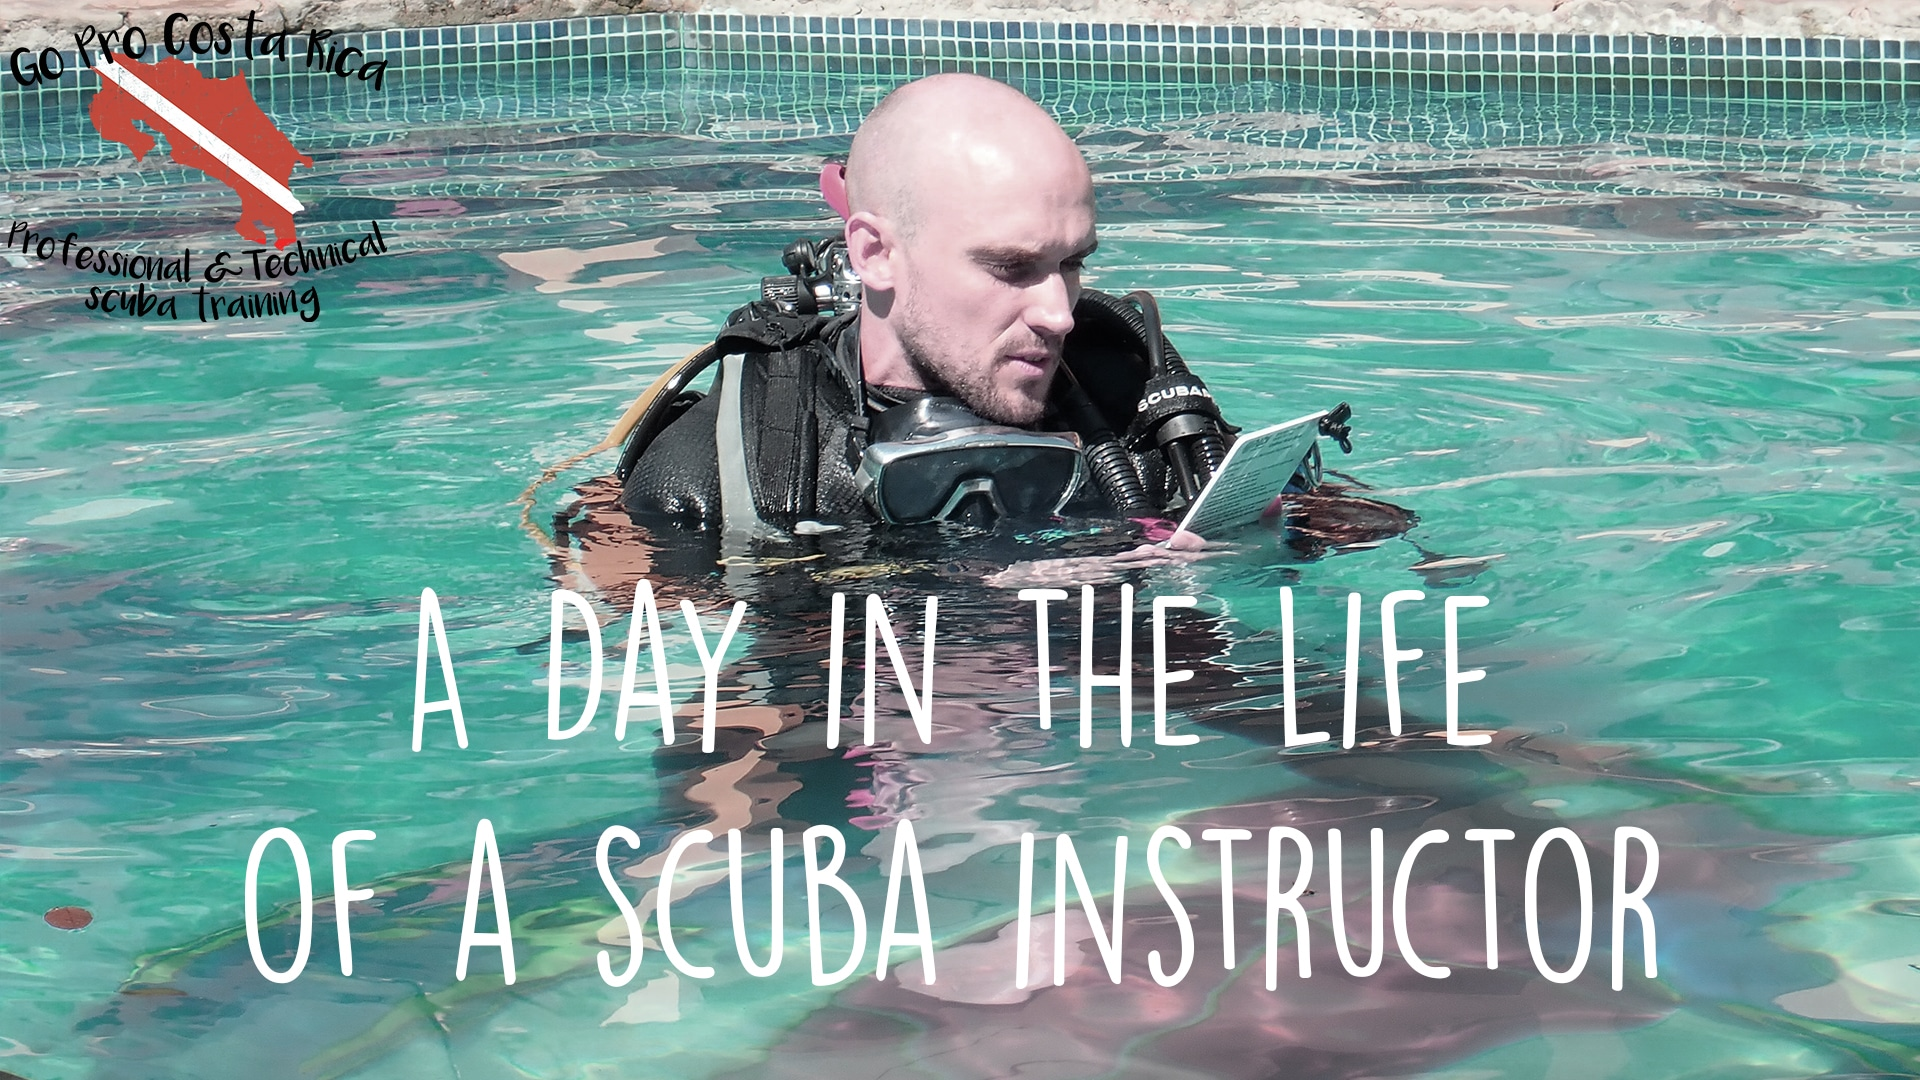 a day in the life of a scuba instructor